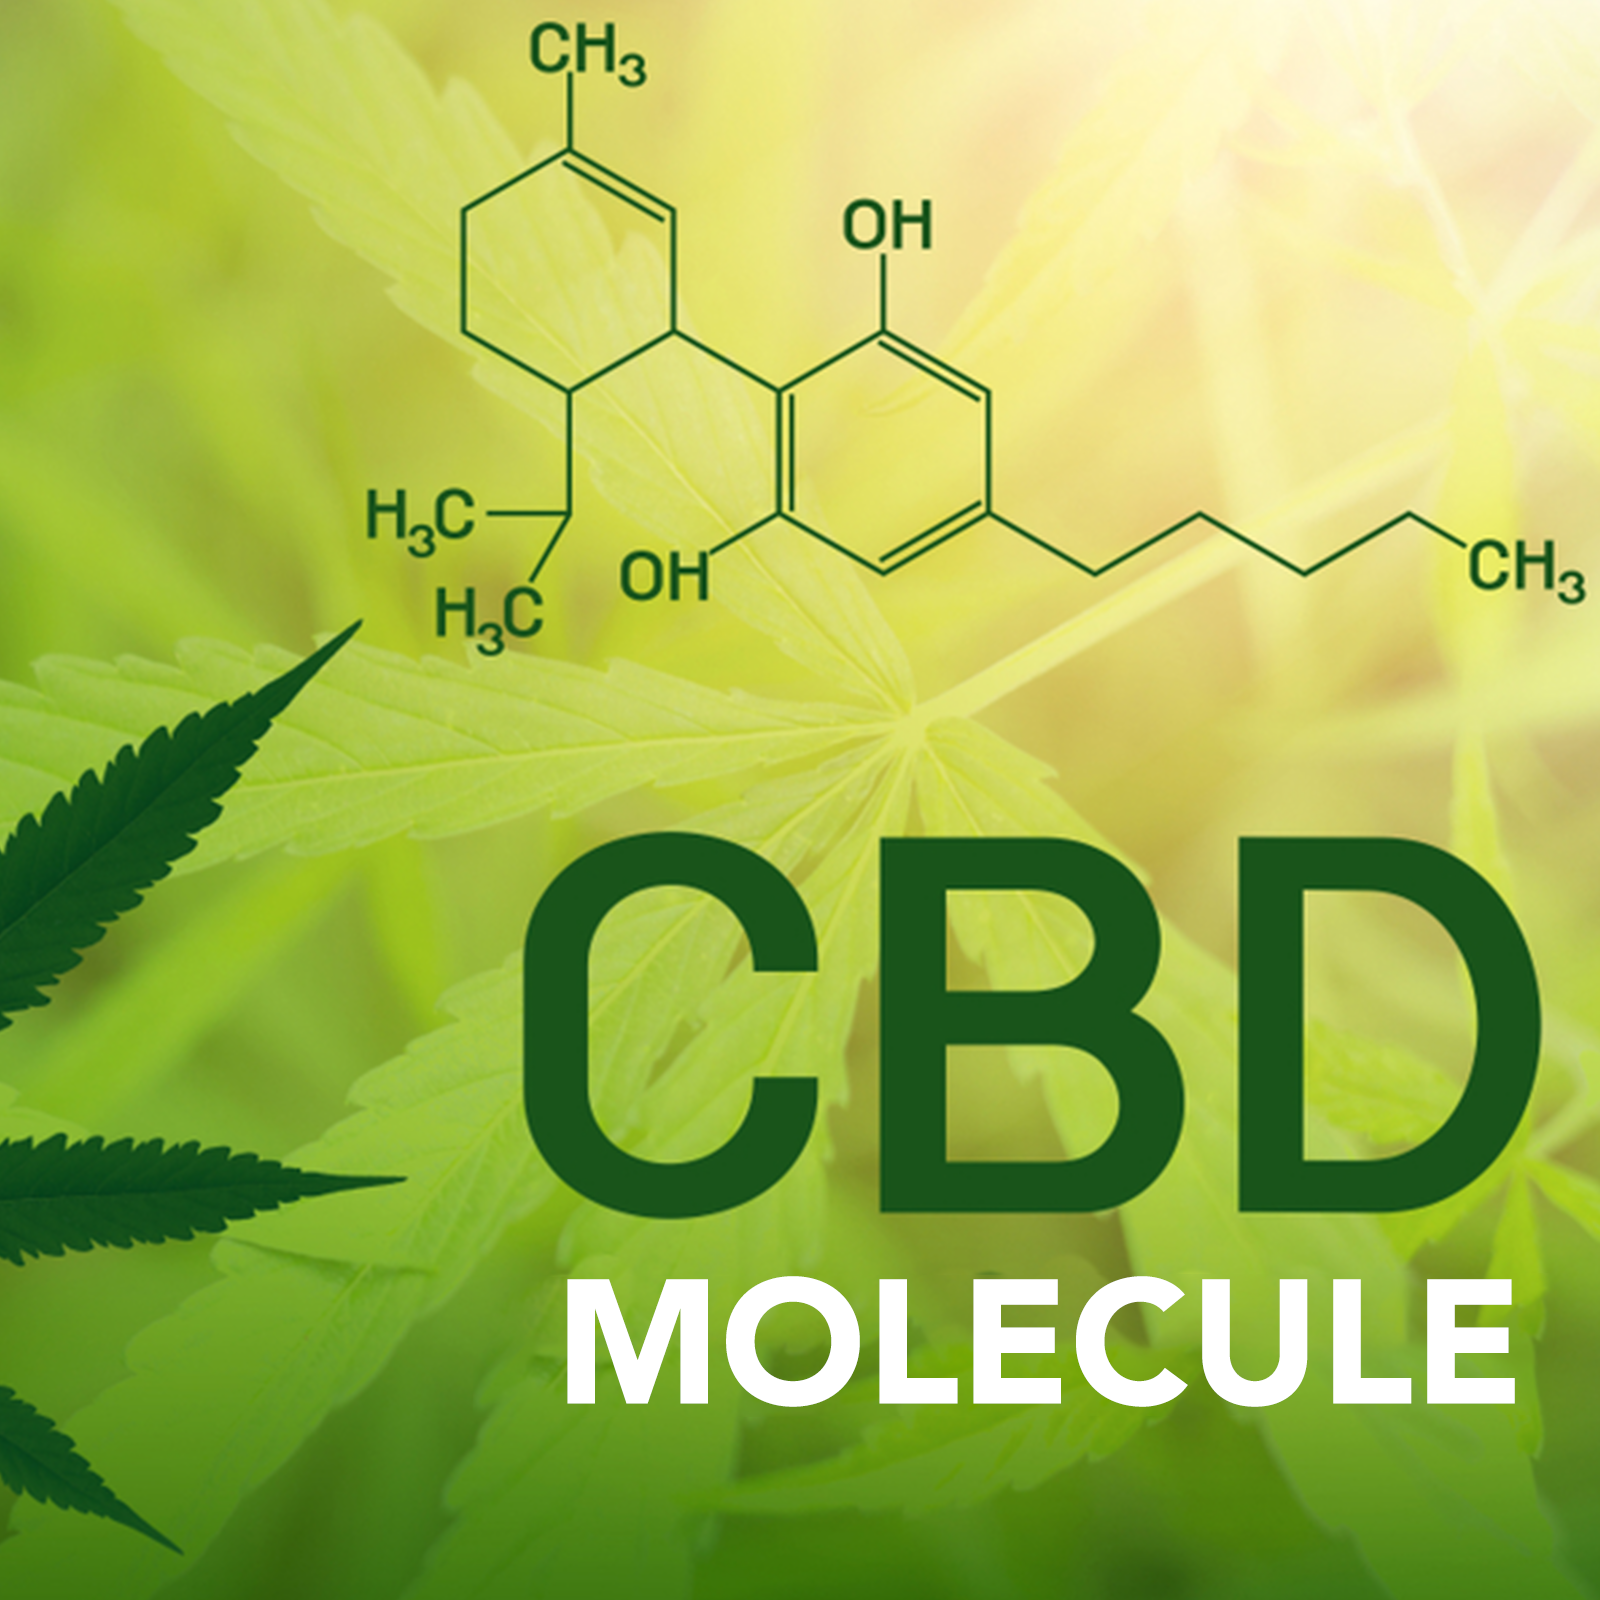 visualizes what is cbd molecule